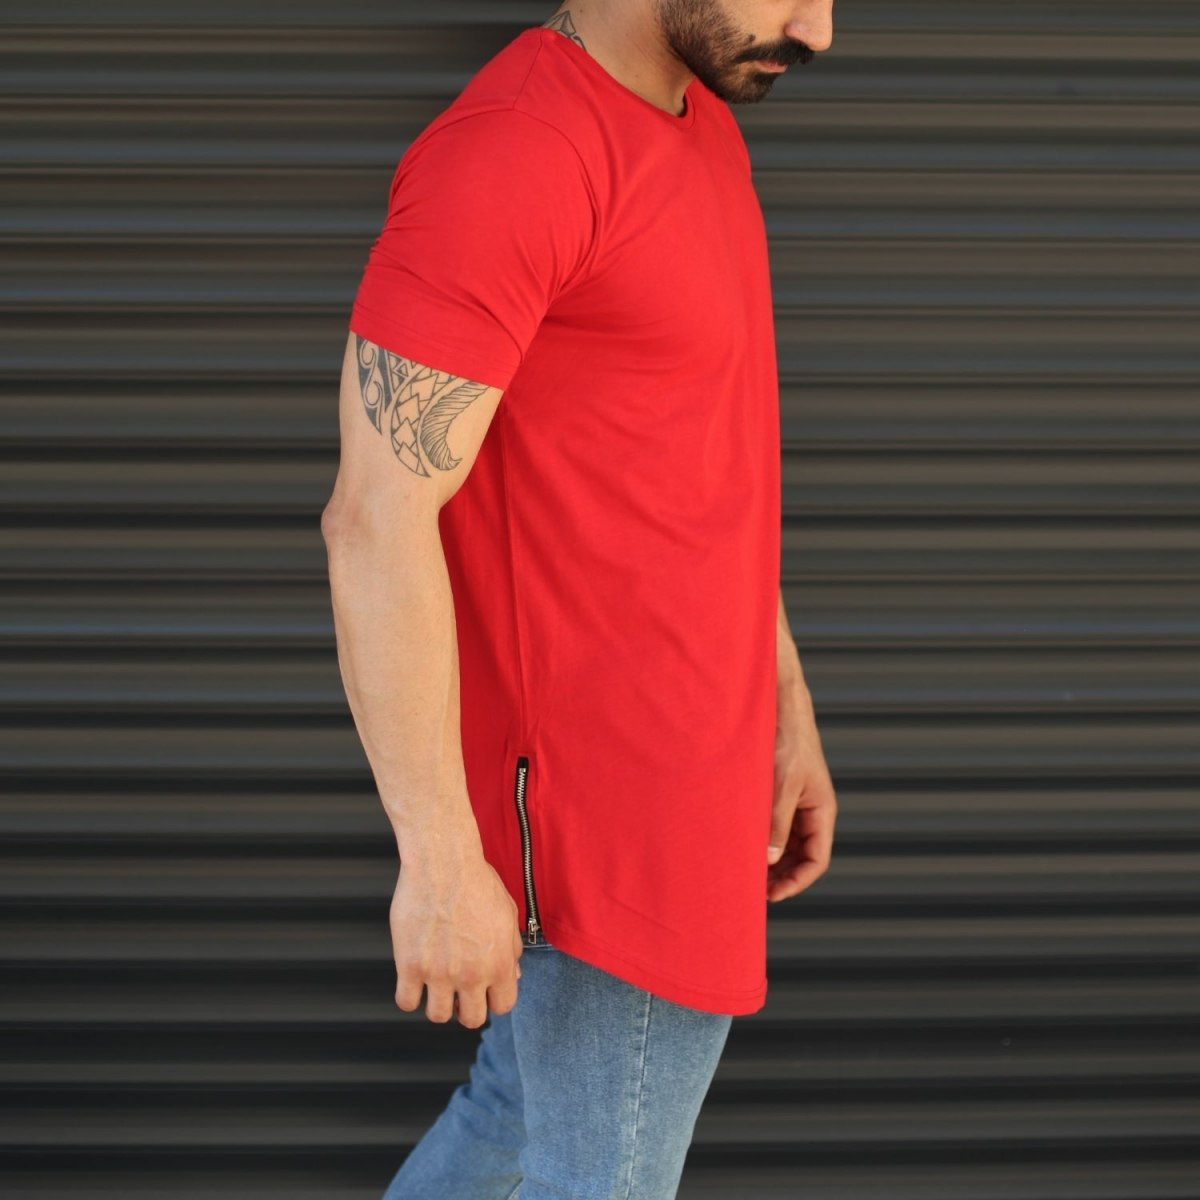 Men's Longline Round Neck T-Shirt With Zipper In Red Mv Premium Brand - 2